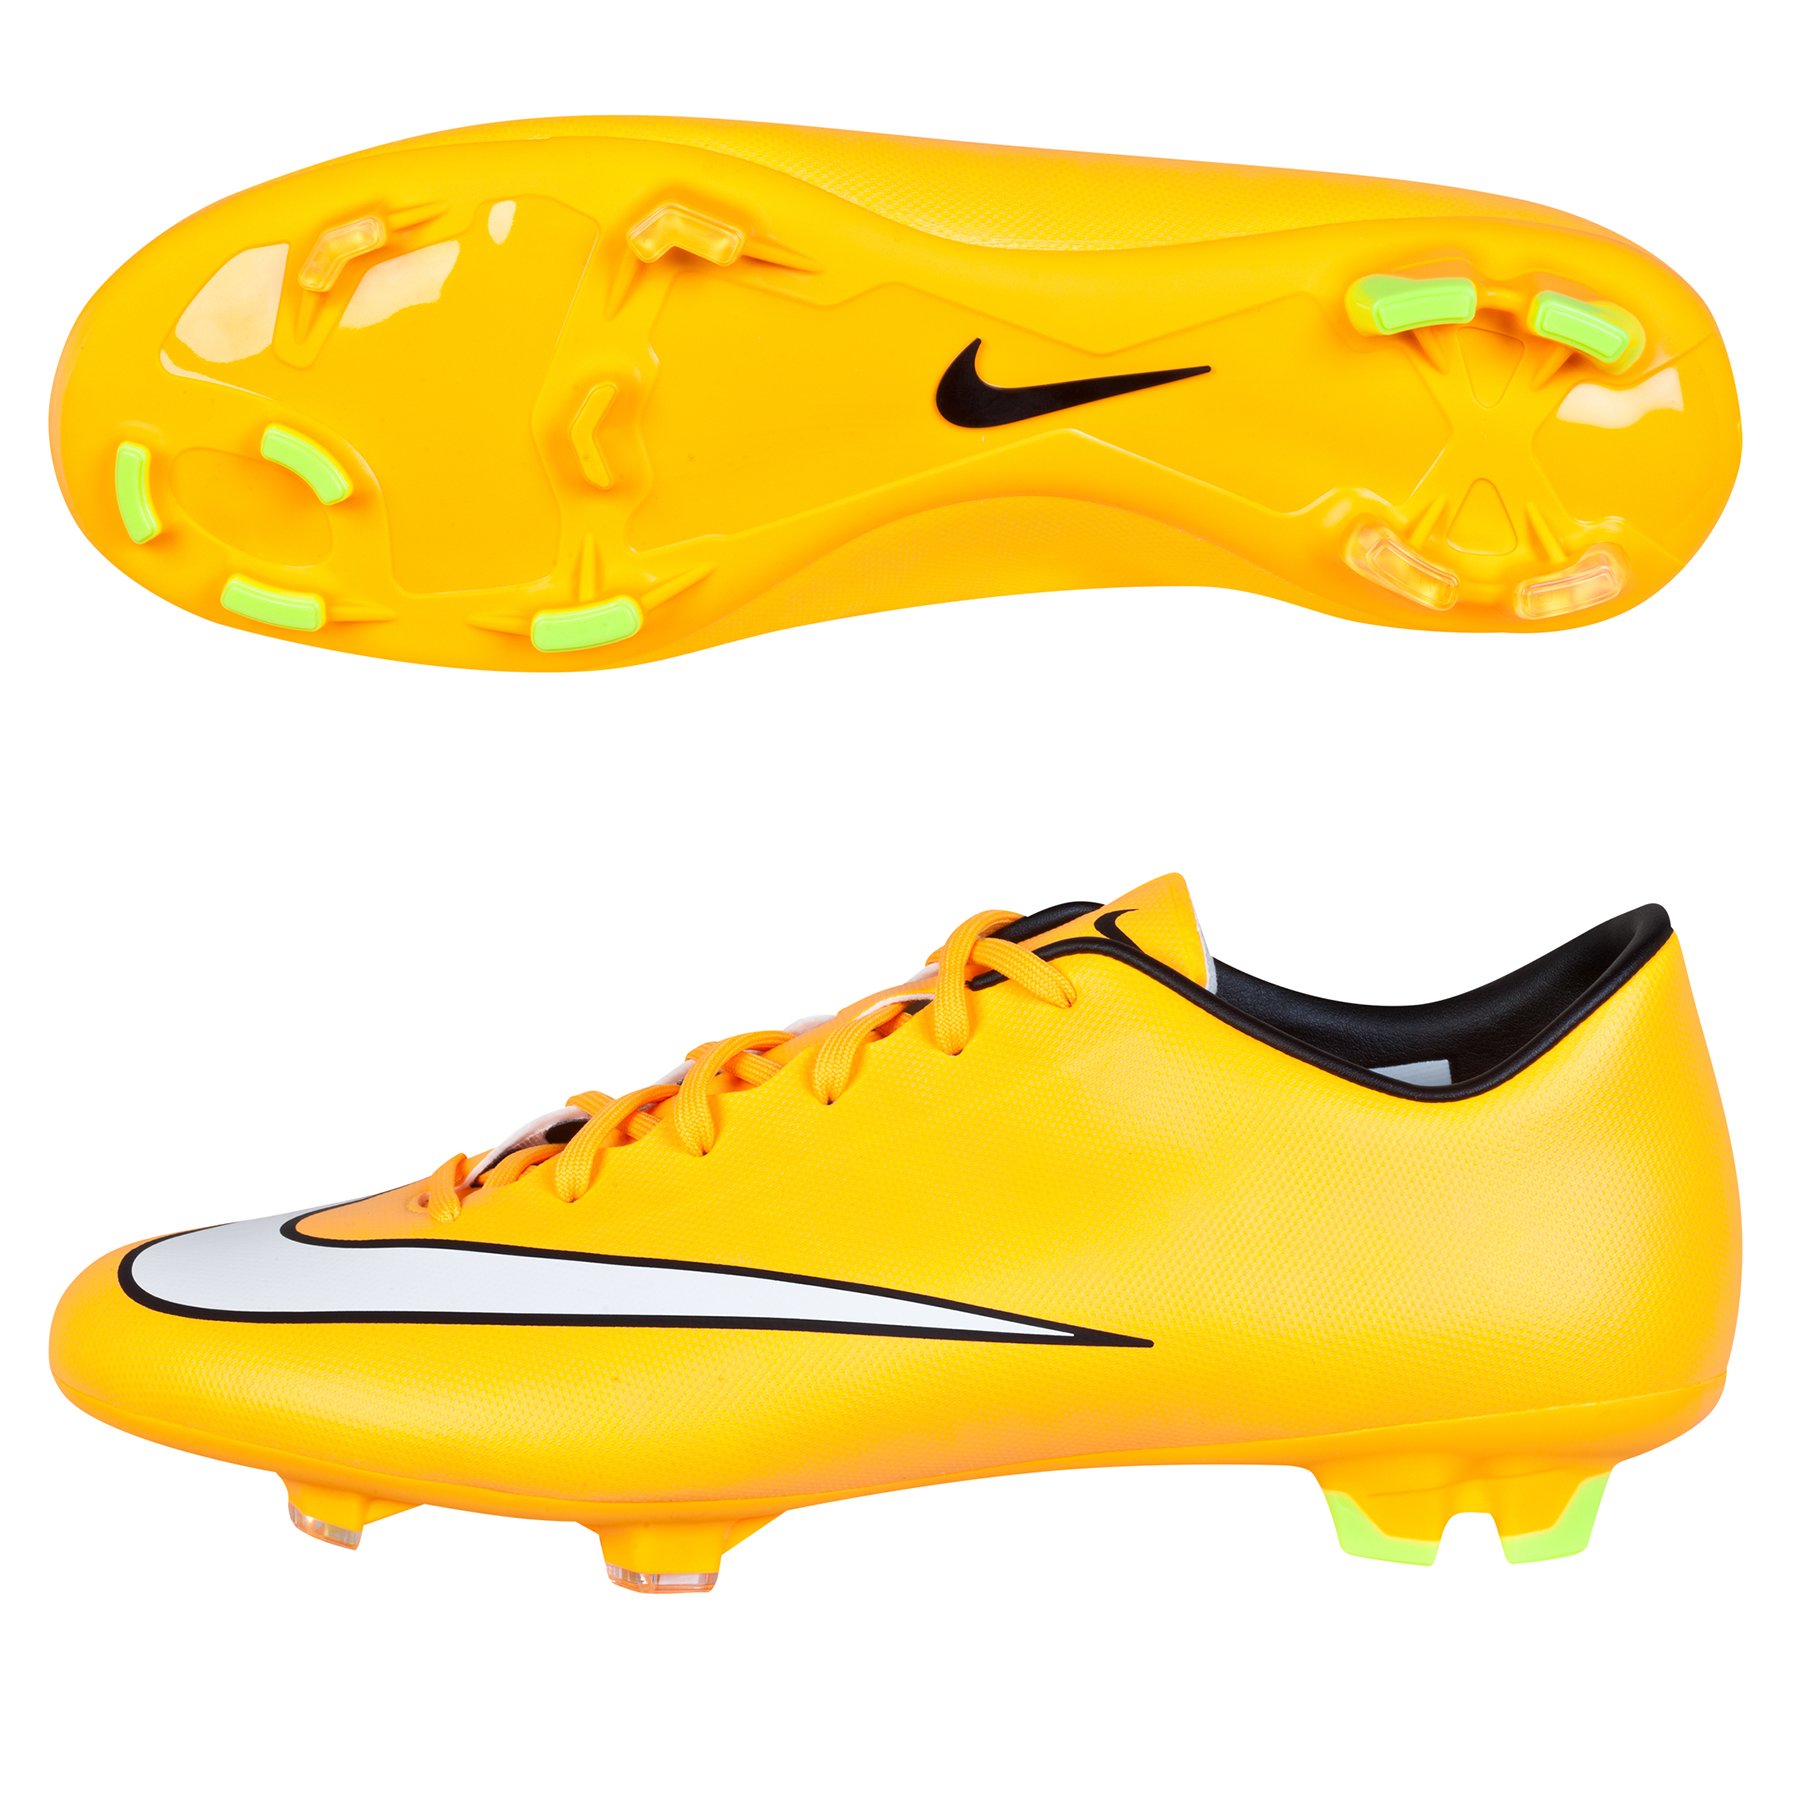 Nike Mercurial Victory V Firm Ground Football Boots - Kids Orange